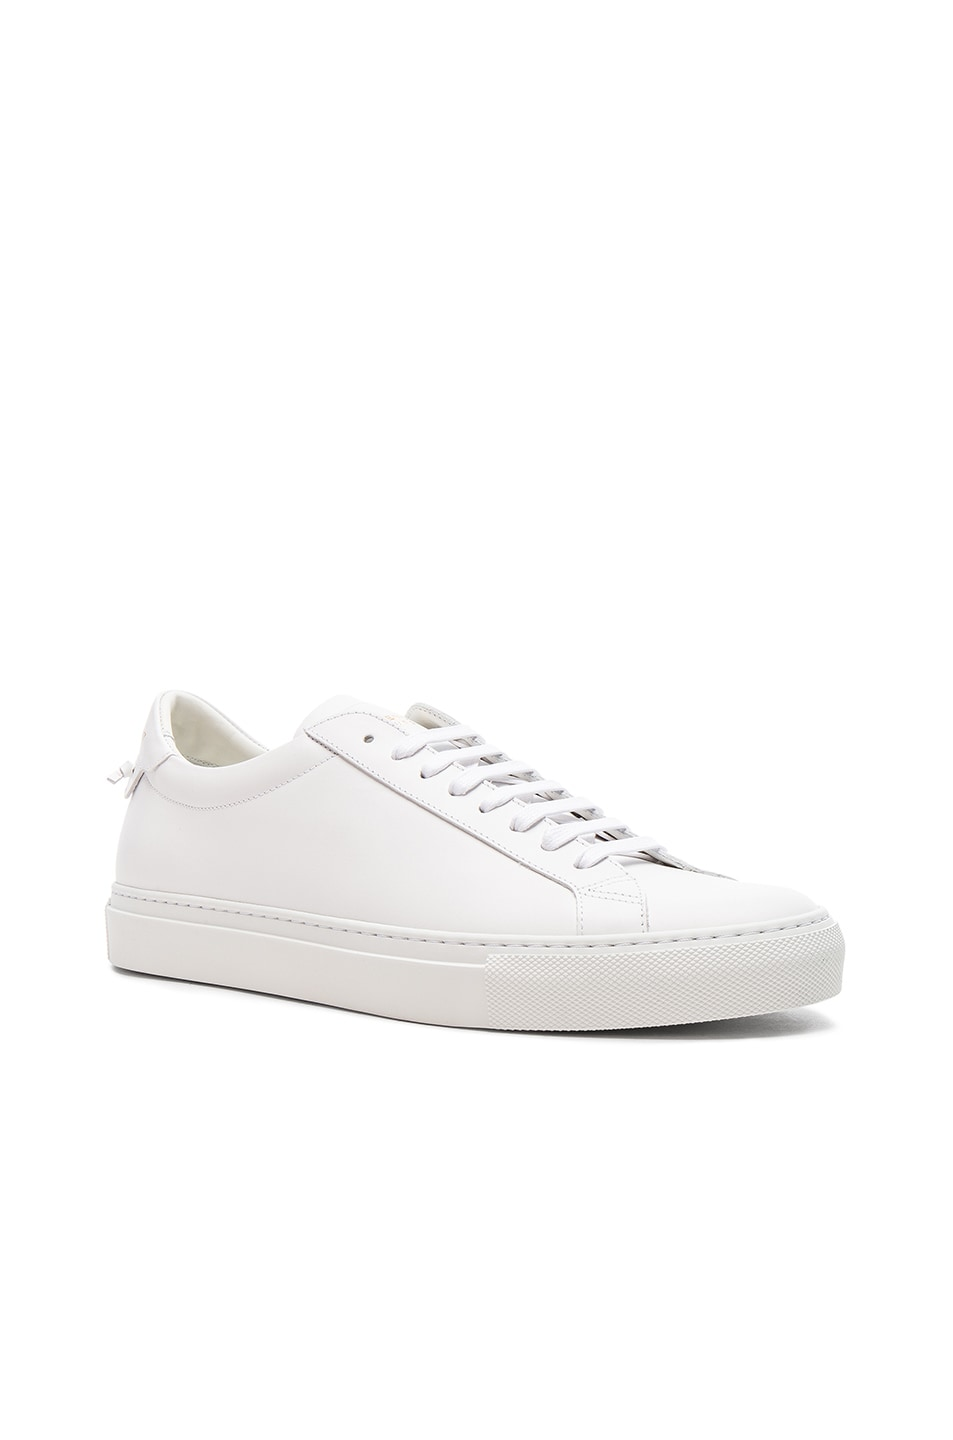 Image 1 of Givenchy Leather Urban Tie Knot Sneakers in White